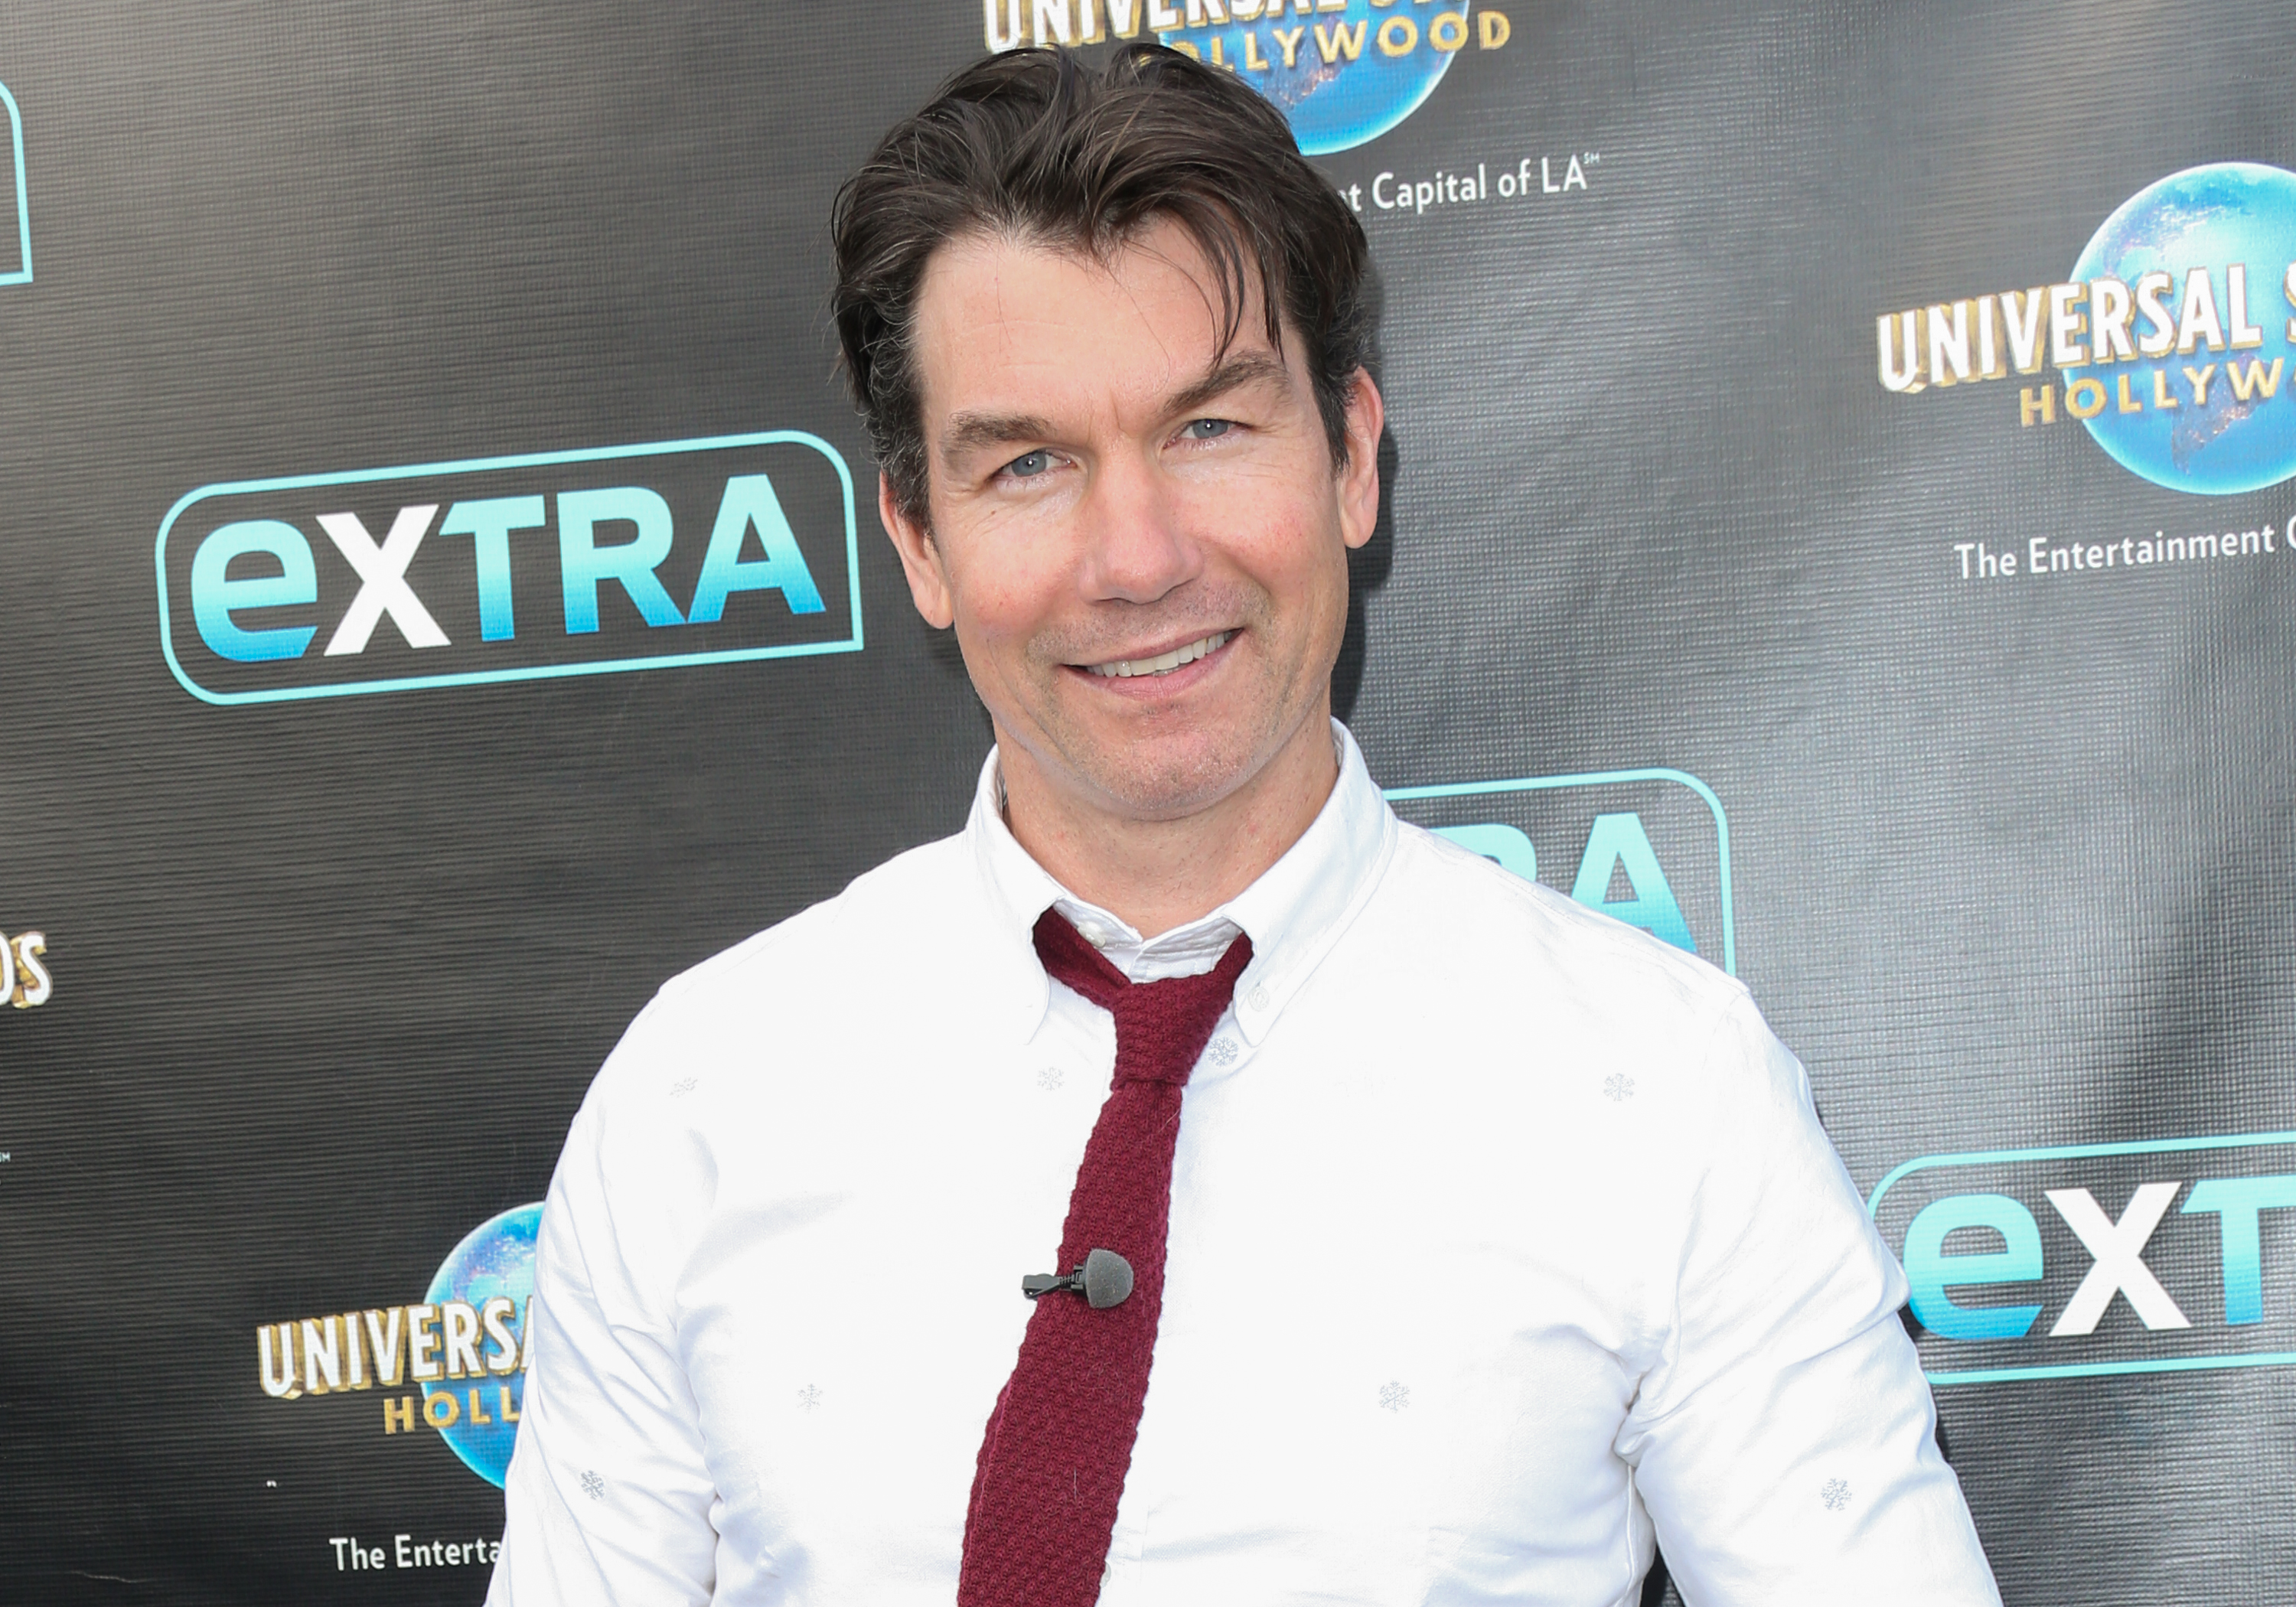 Chloe Kohanski And Jerry O'Connell Visit 'Extra'